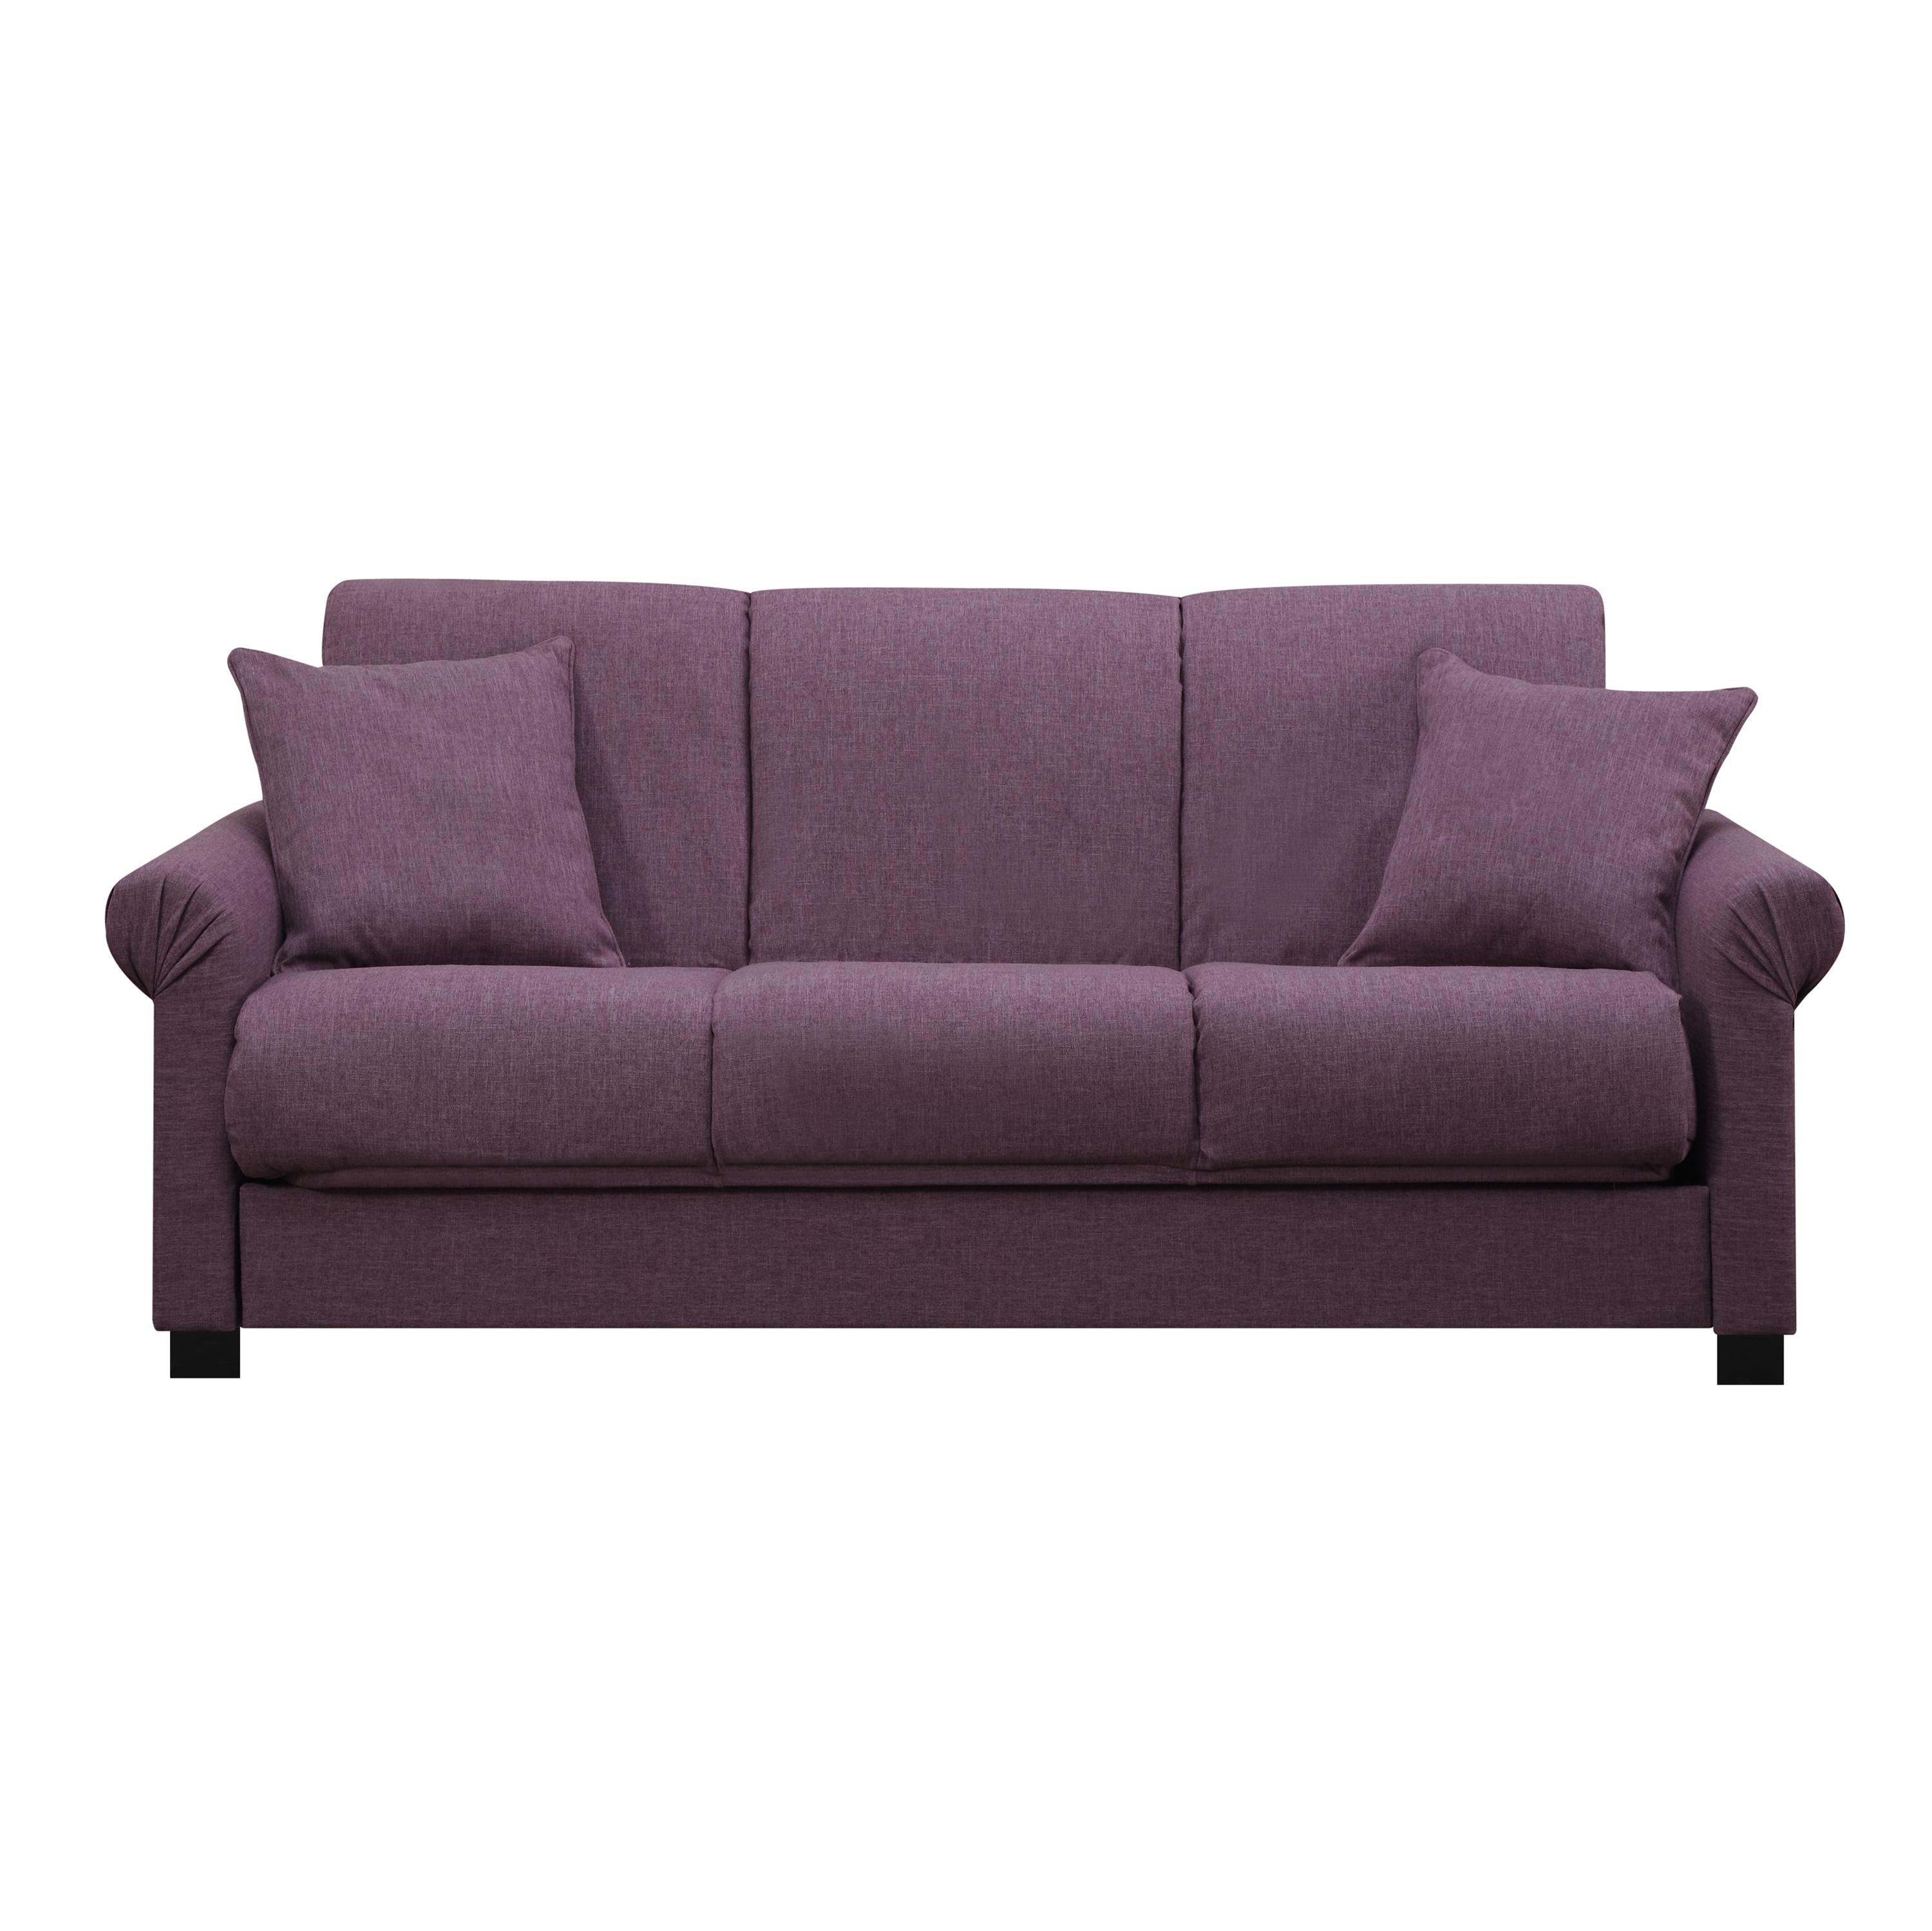 Enhancing a stylish home with sectional sleeper sofa ikea Sleeper sectional